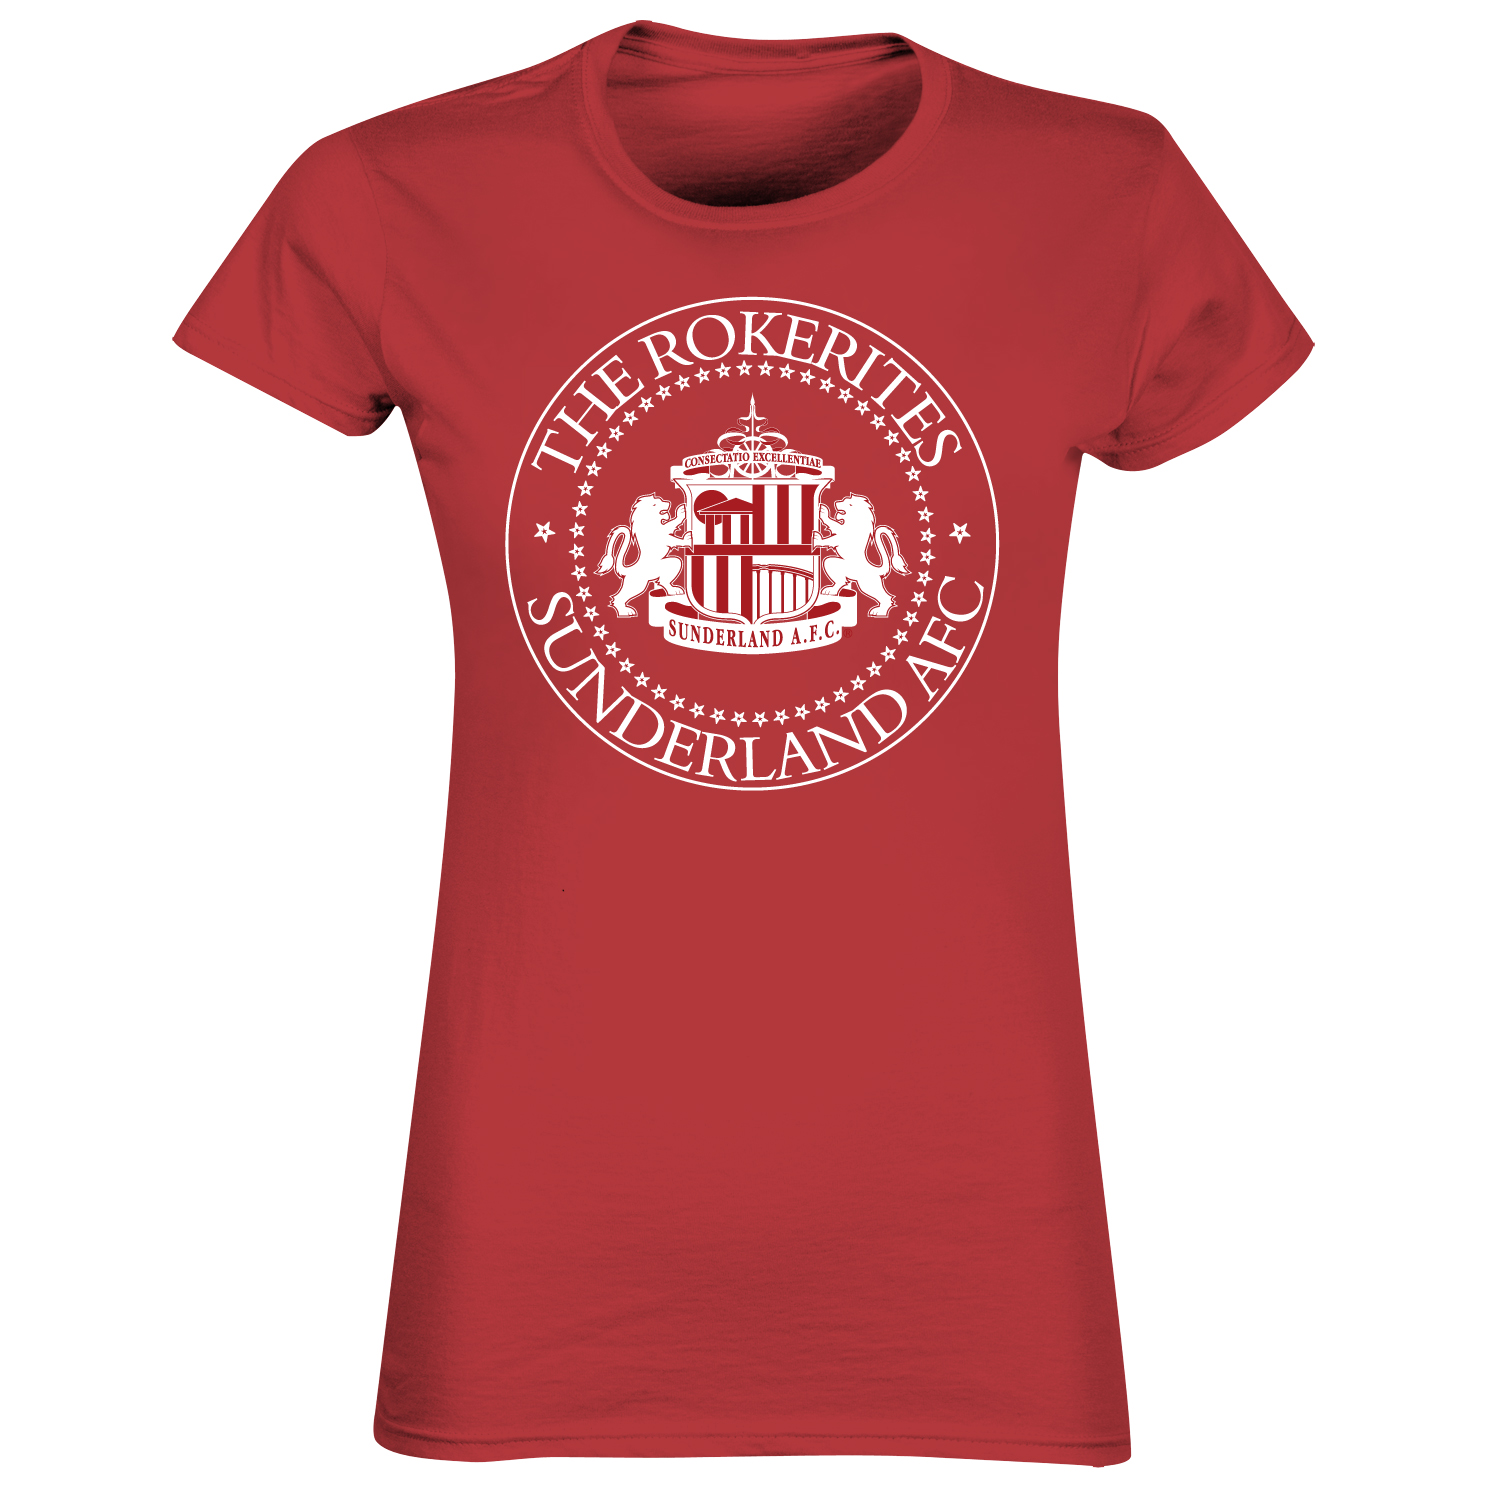 Sunderland 2for?20 Rokerites T-Shirt - Red - Womens